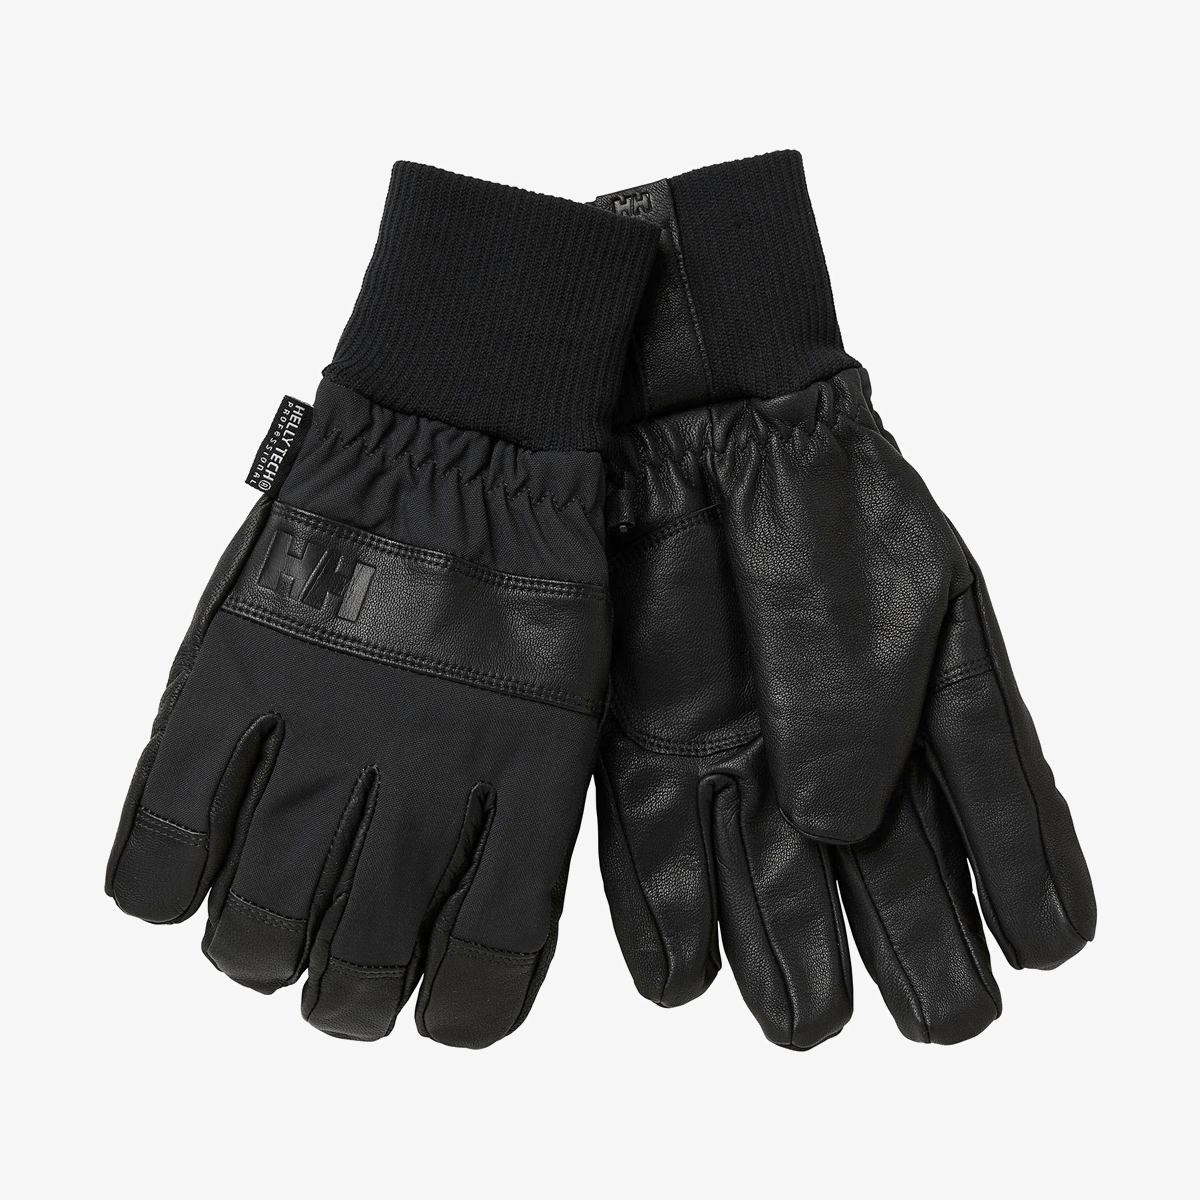 Рукавицы Helly Hansen DAWN PATROL GLOVE